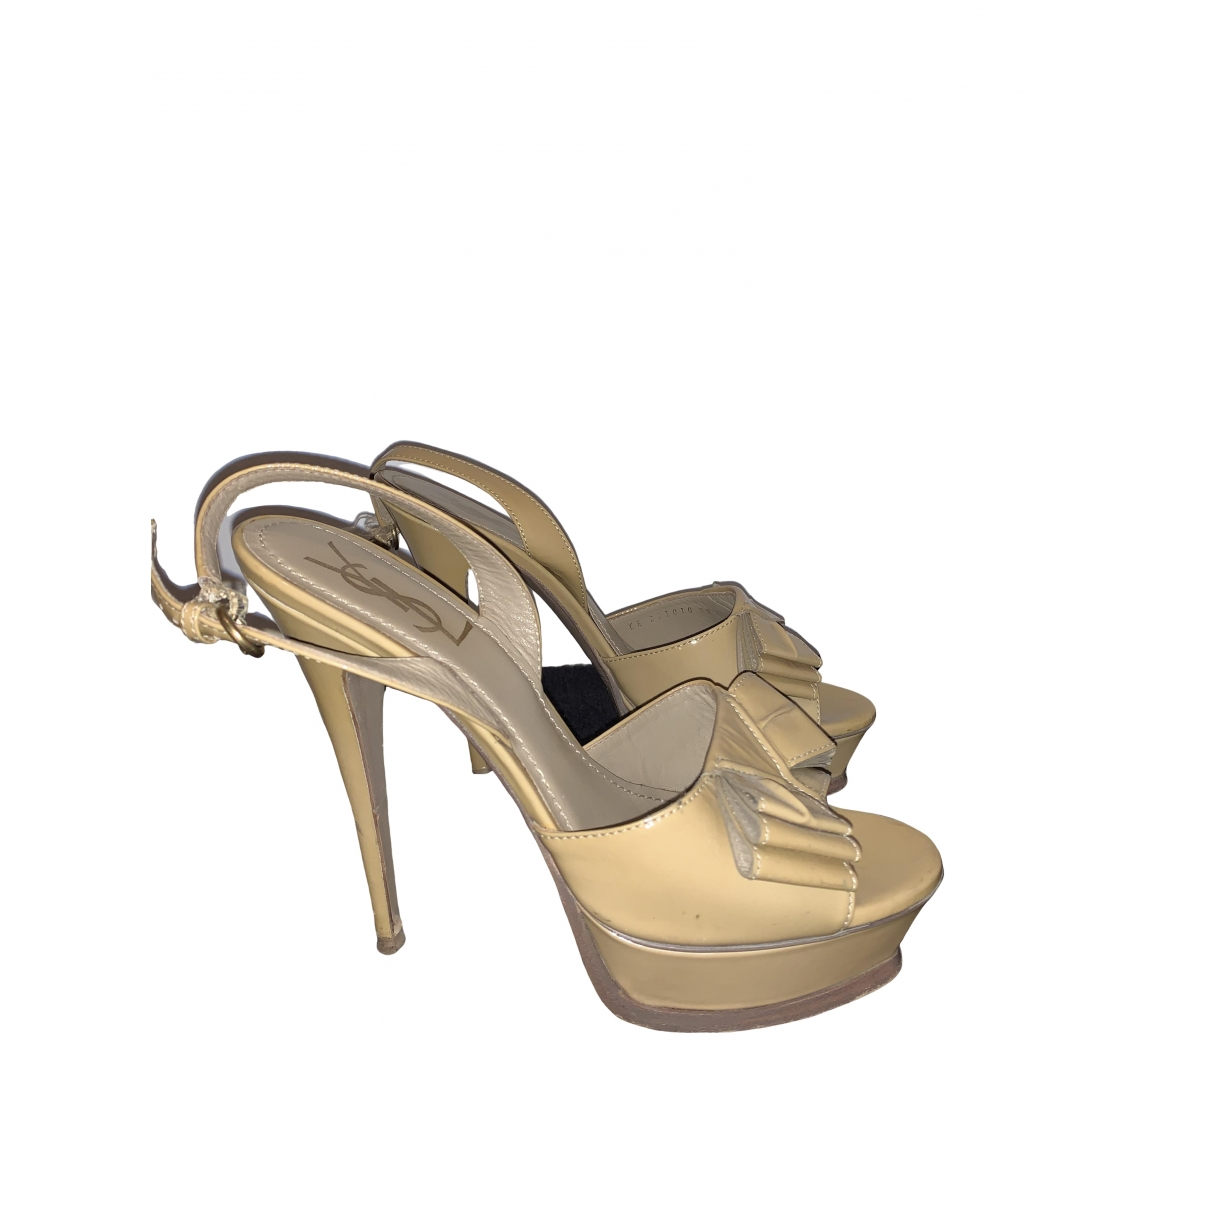 Yves Saint Laurent \N Sandalen in  Beige Lackleder